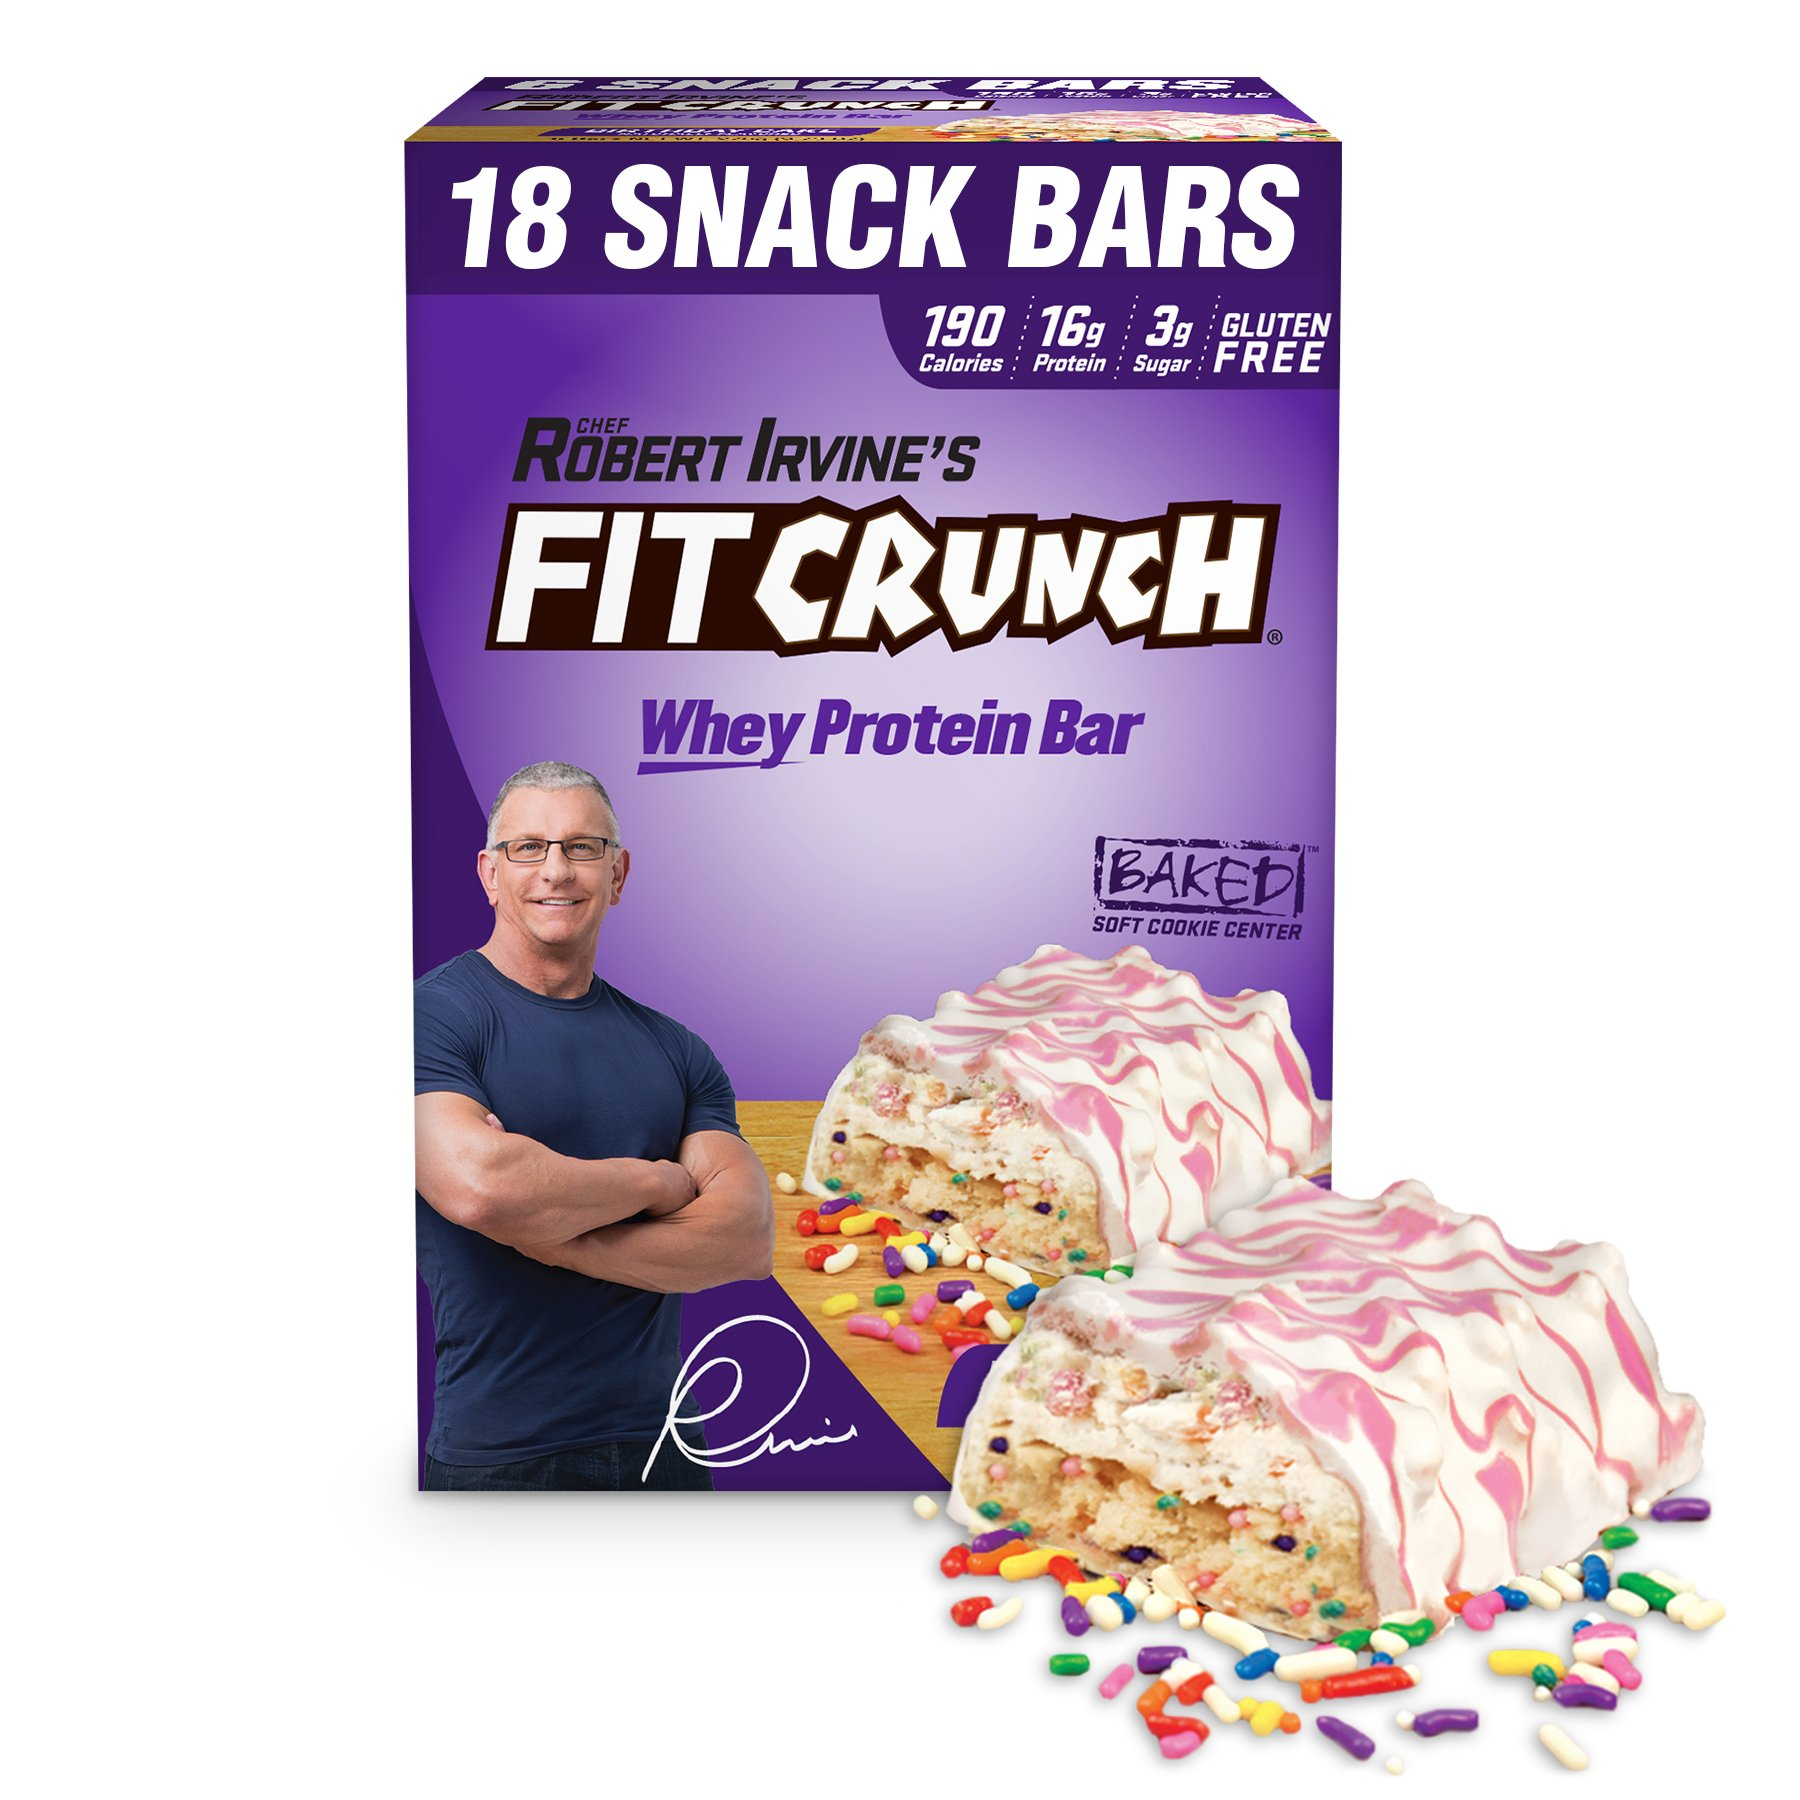 FITCRUNCH Snack Size Protein Bars | Designed by Robert Irvine | World's Only 6-Layer Baked Bar | Just 3g of Sugar & Soft Cake Core (18 Snack Size Bars, Birthday Cake) by Fit Crunch